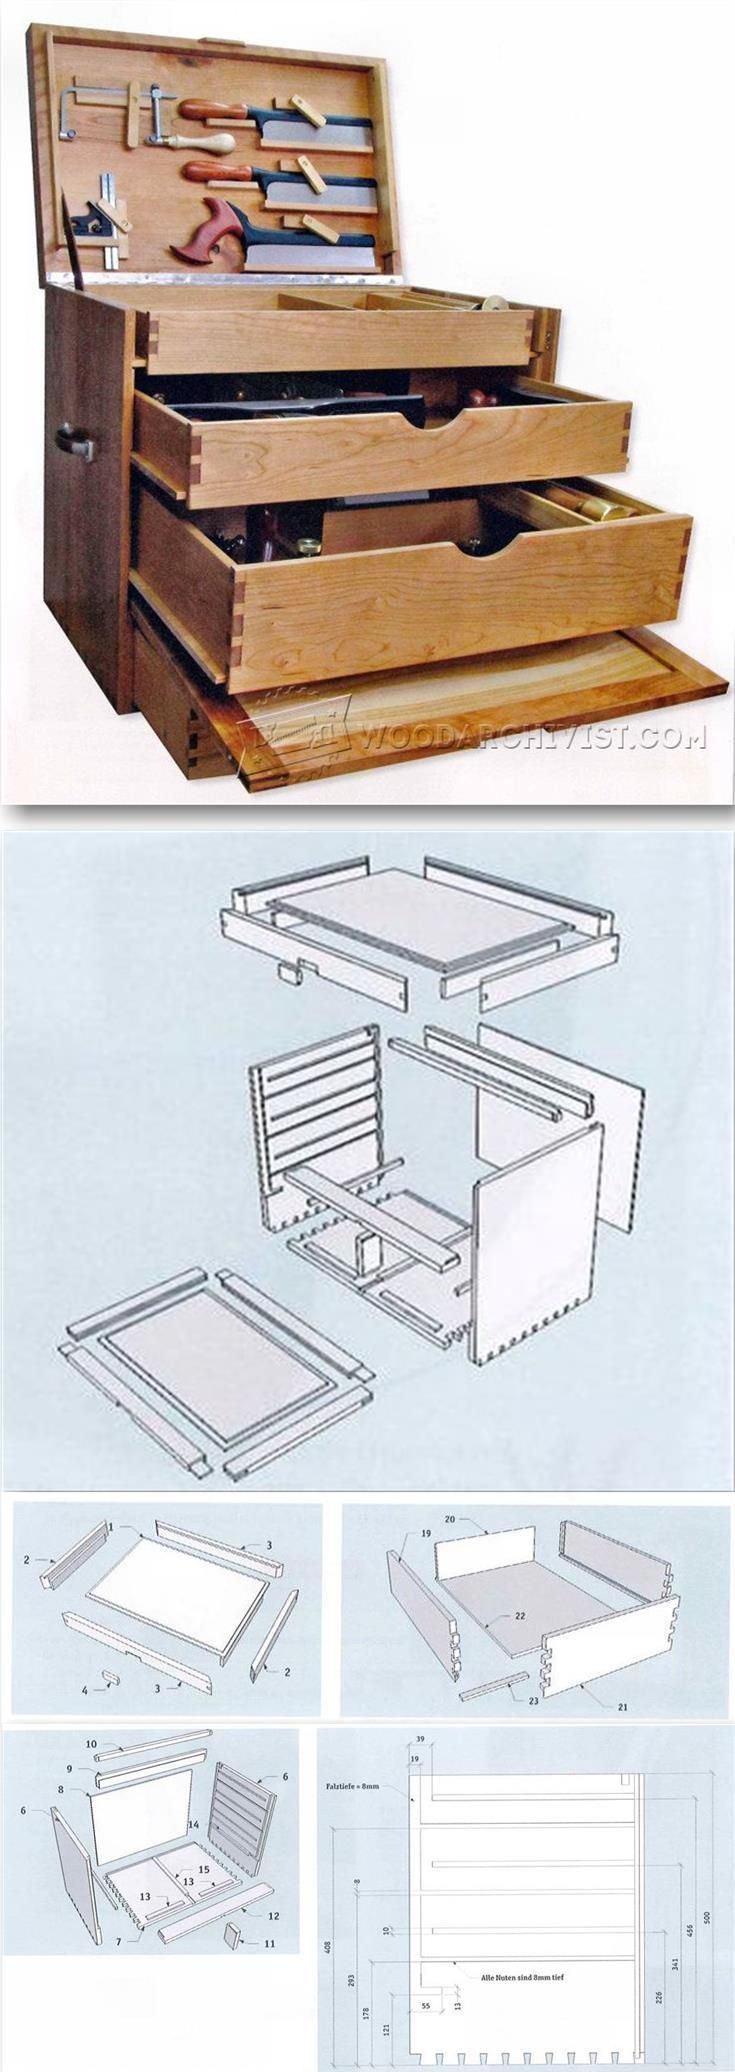 Woodworking Tool Chest Plans - Workshop Solutions Projects, Tips and Tricks | http://WoodArchivist.com